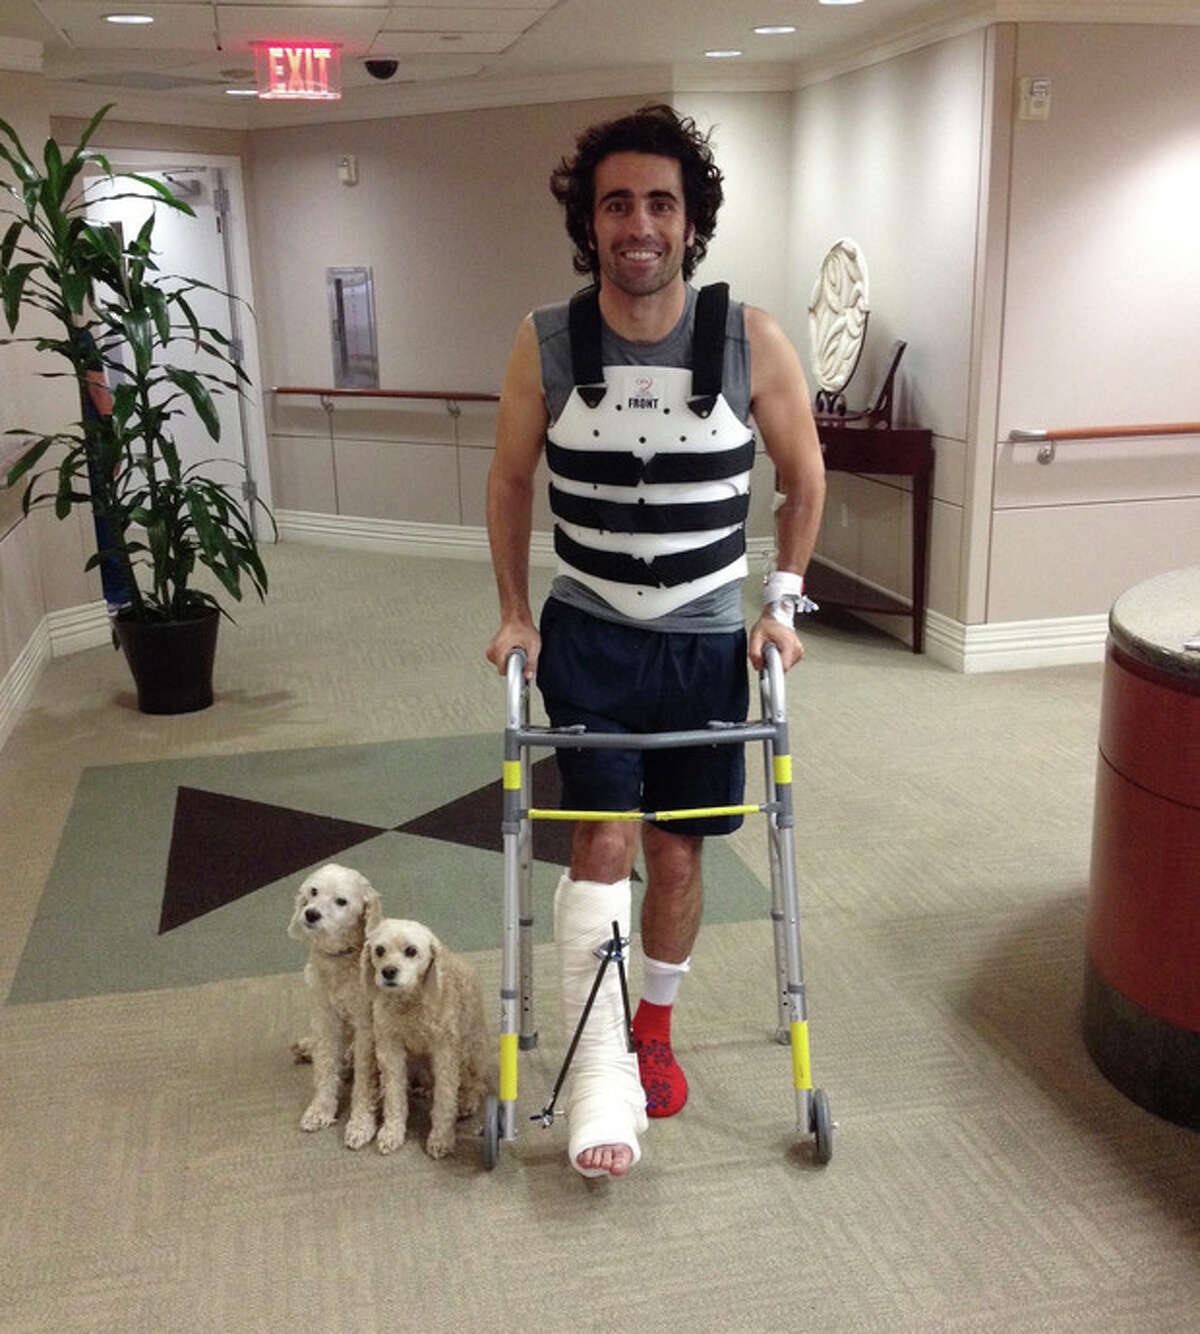 FILE - In this Oct. 10, 2013, file photo, provided by Team Chip Ganassi Racing, IndyCar driver Dario Franchitti, of Scotland, poses with his dogs, Shug and Buttermilk, in a photo taken by his brother, Marino Franchitti, at Memorial Hermann-Texas Medical Center in Houston. The three-time Indianapolis 500 winner said Thursday, Nov. 14, 2013, that doctors have told him he can no longer race because of injuries sustained in an IndyCar crash last month. He fractured his spine, broke his right ankle and suffered a concussion in the Oct. 6 crash at Houston. (AP Photo/Marino Franchitti, File)